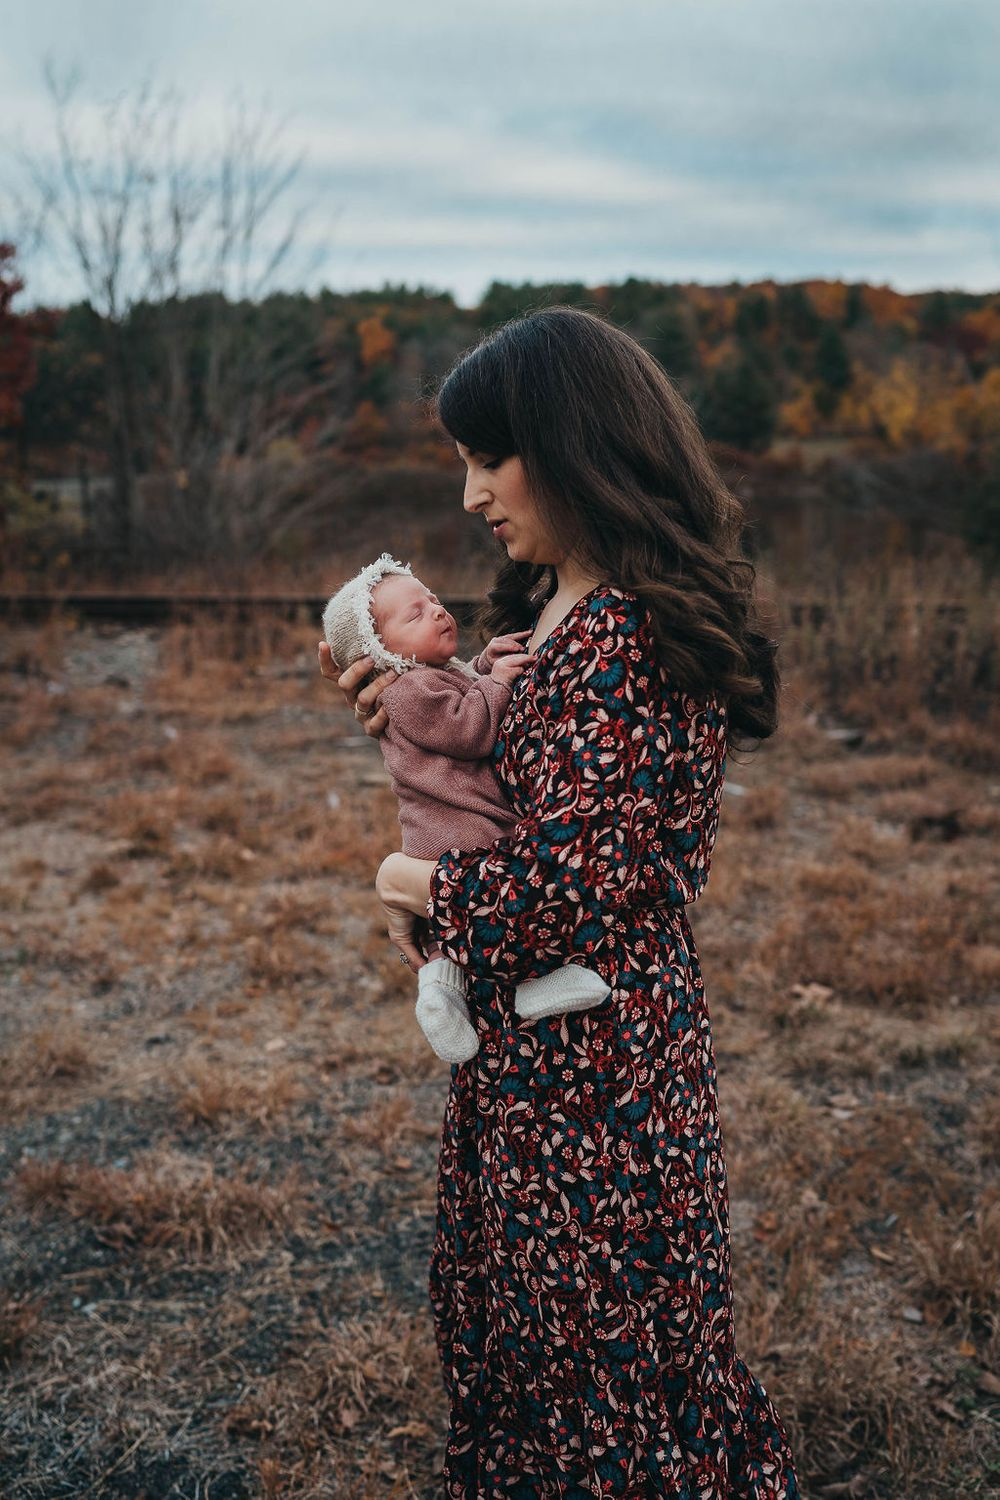 lovely image of mom and baby in outdoors in central massachusetts